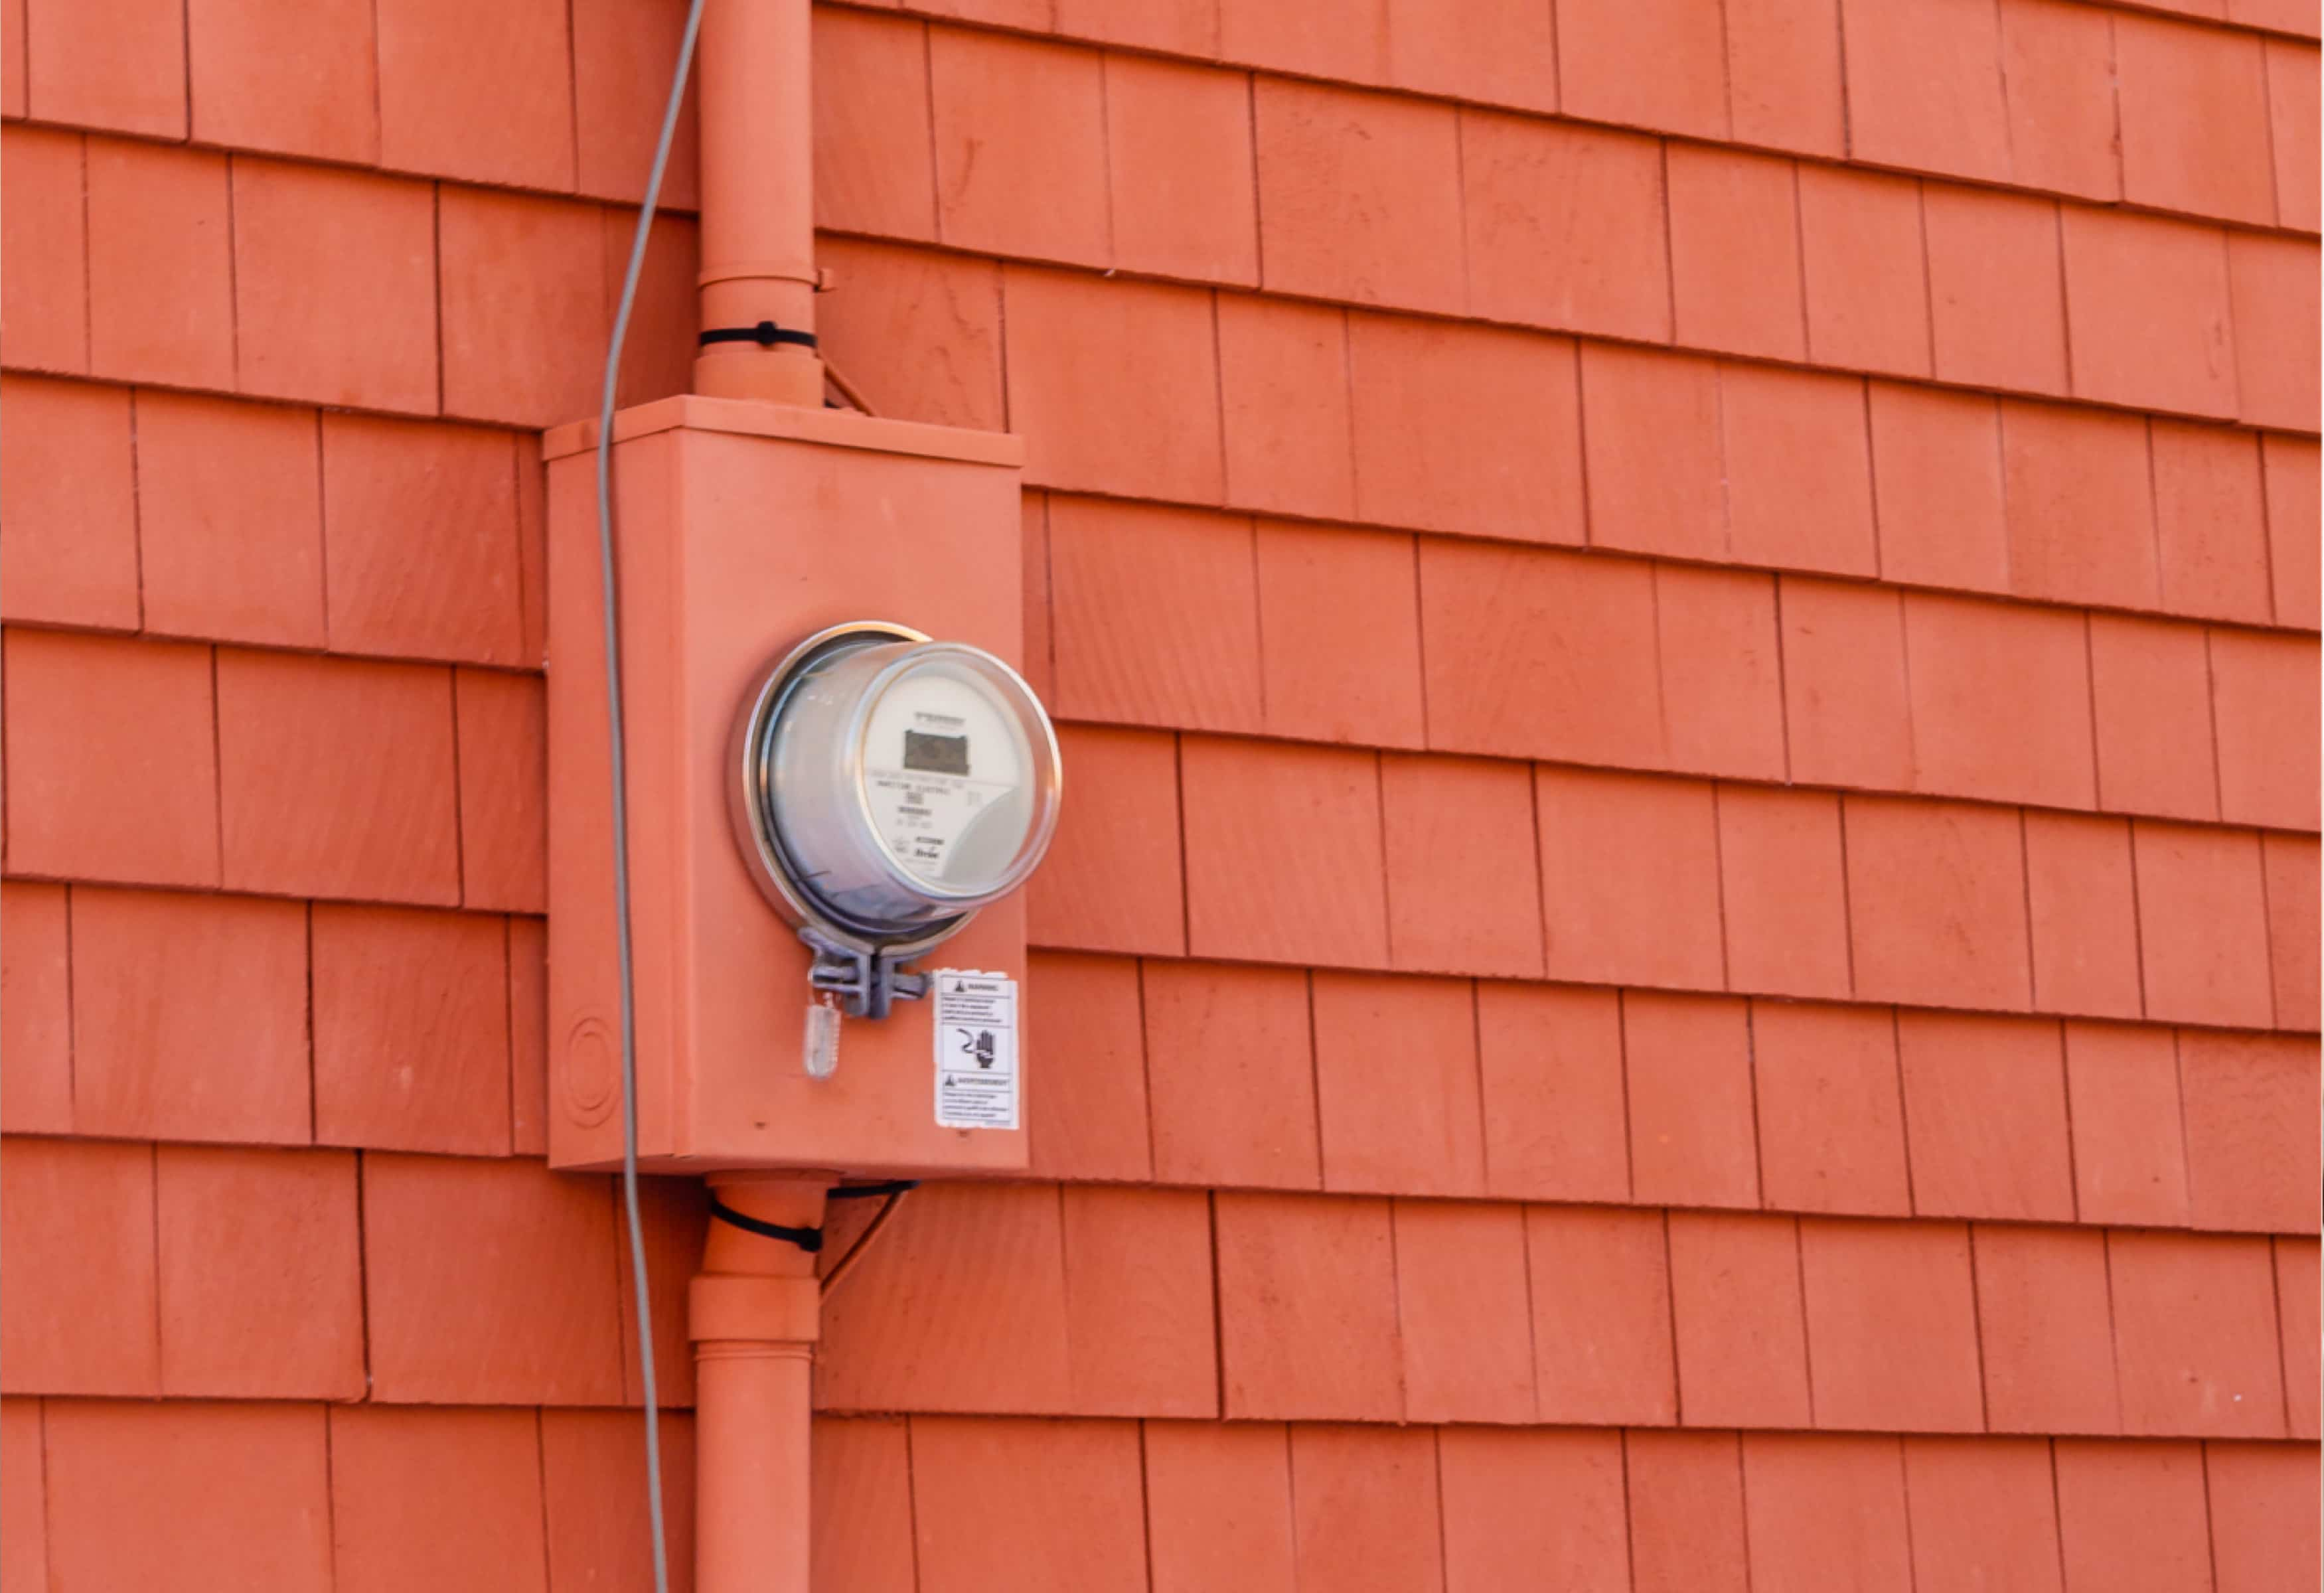 Energy management systems to help customers monitor energy use